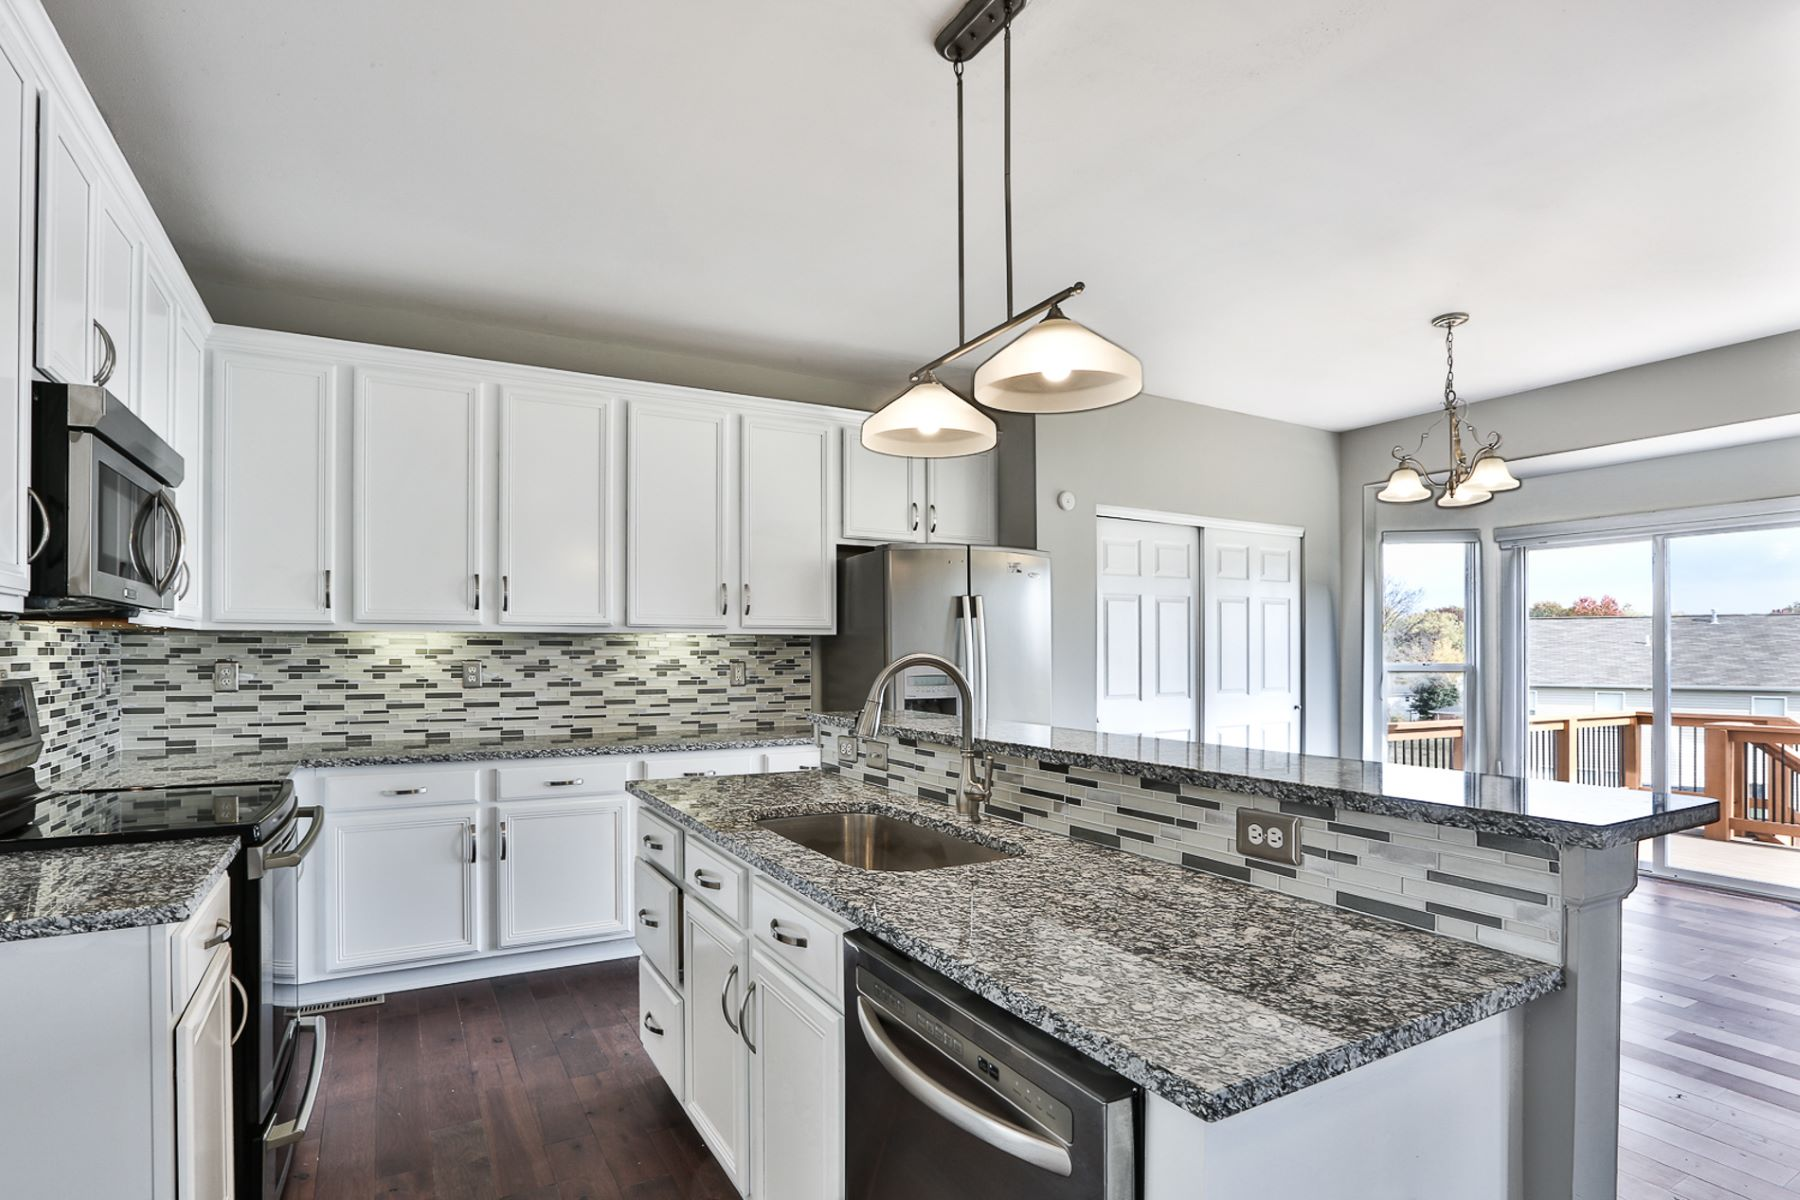 Additional photo for property listing at Shorewinds Trail 1331 Shorewinds Trail St. Charles, Missouri 63303 United States